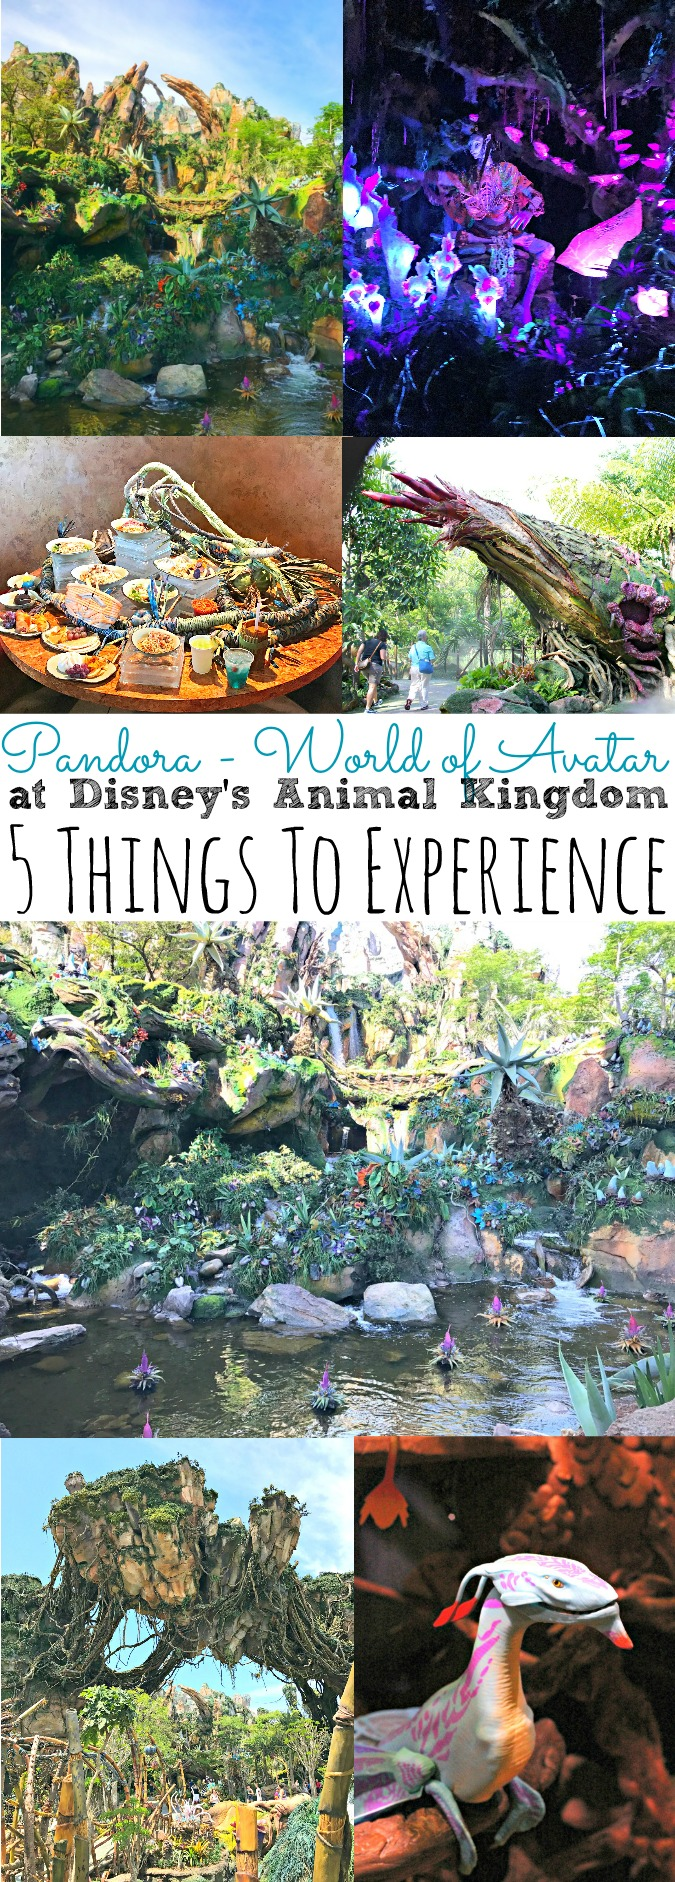 5 Things To Experience at Pandora World of Avatar